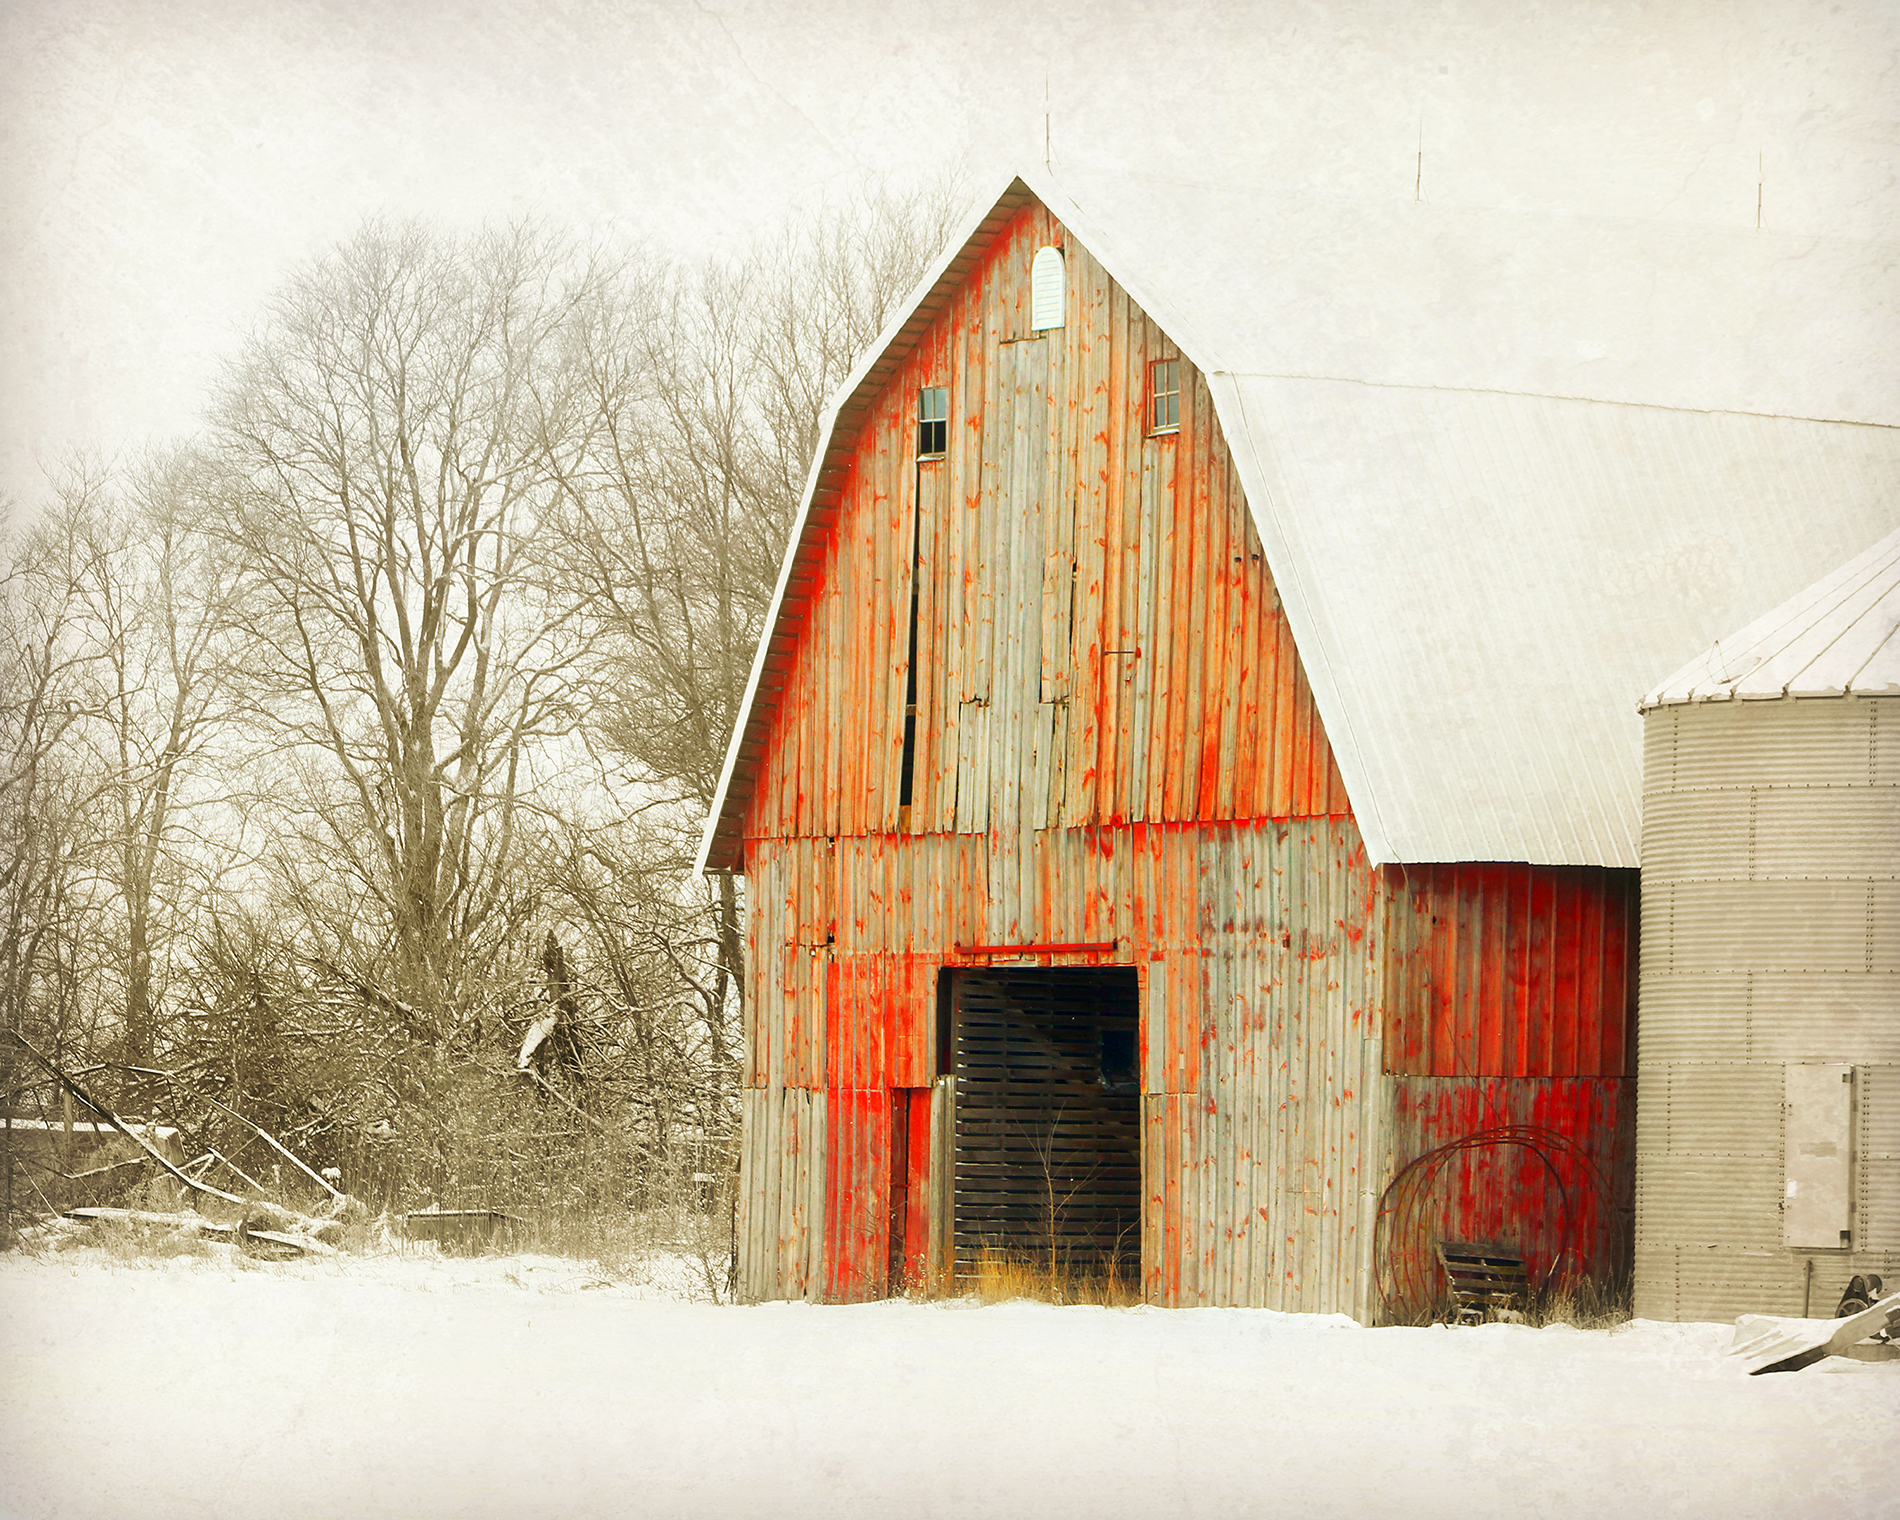 weathered-red-barn-zapp.jpg